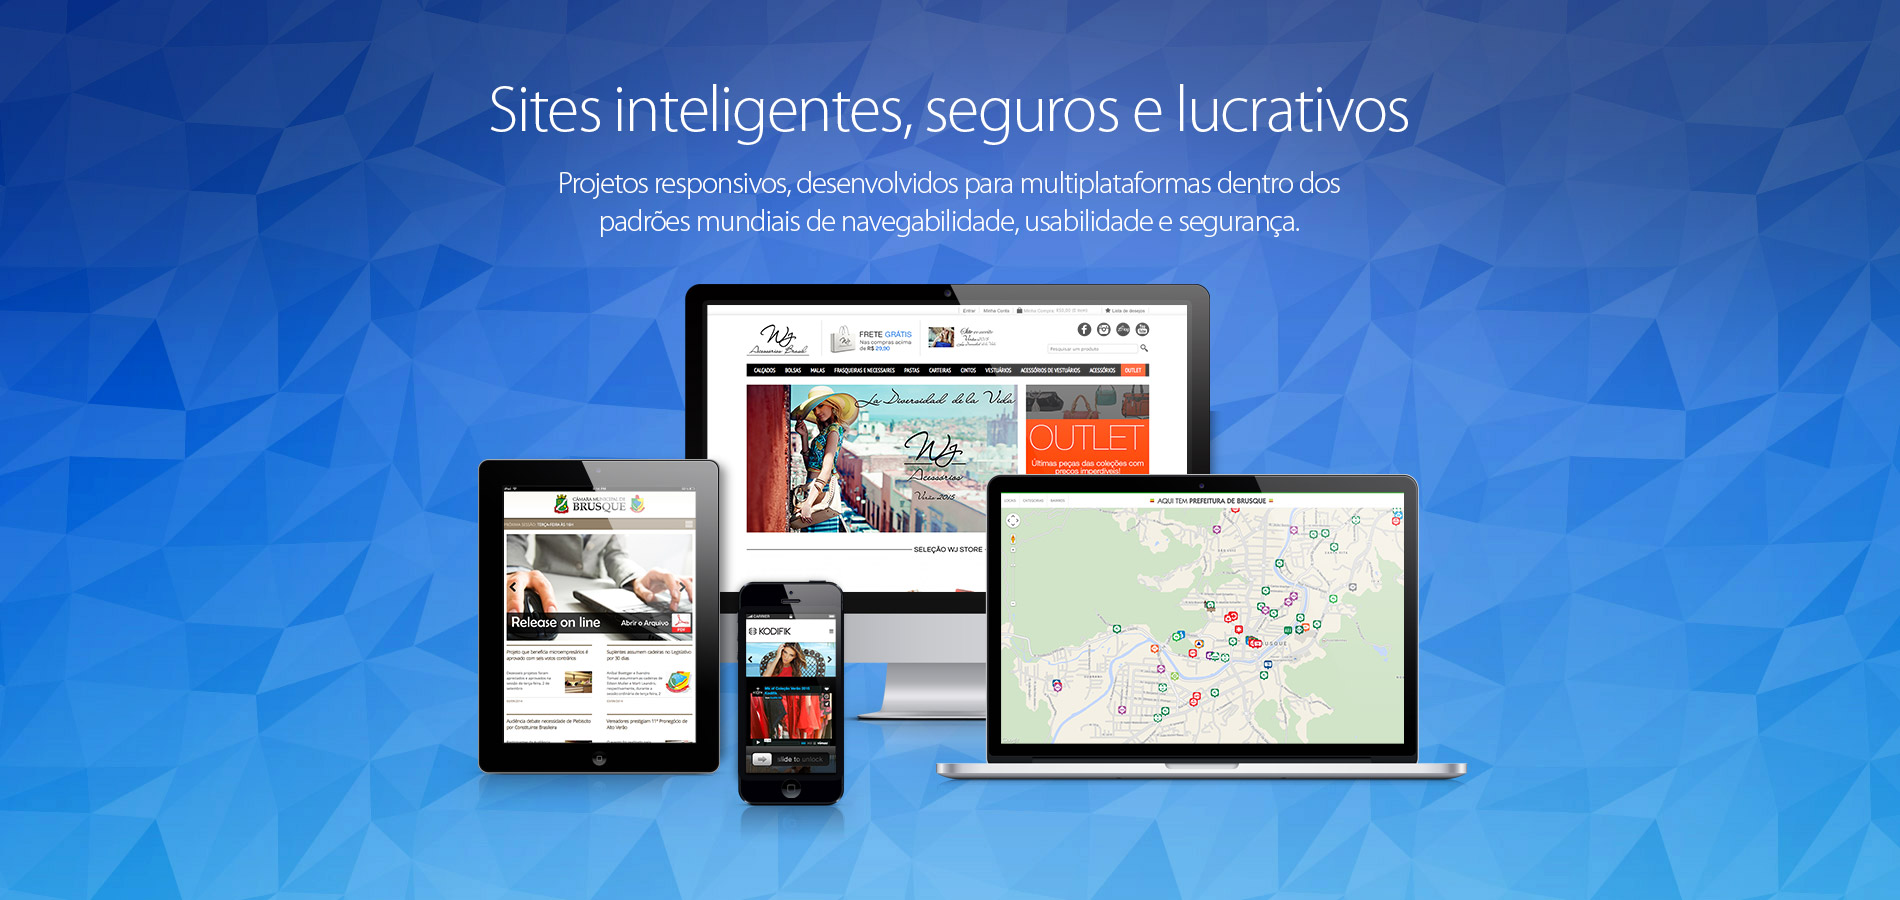 Sites inteligentes, seguros e lucrativos